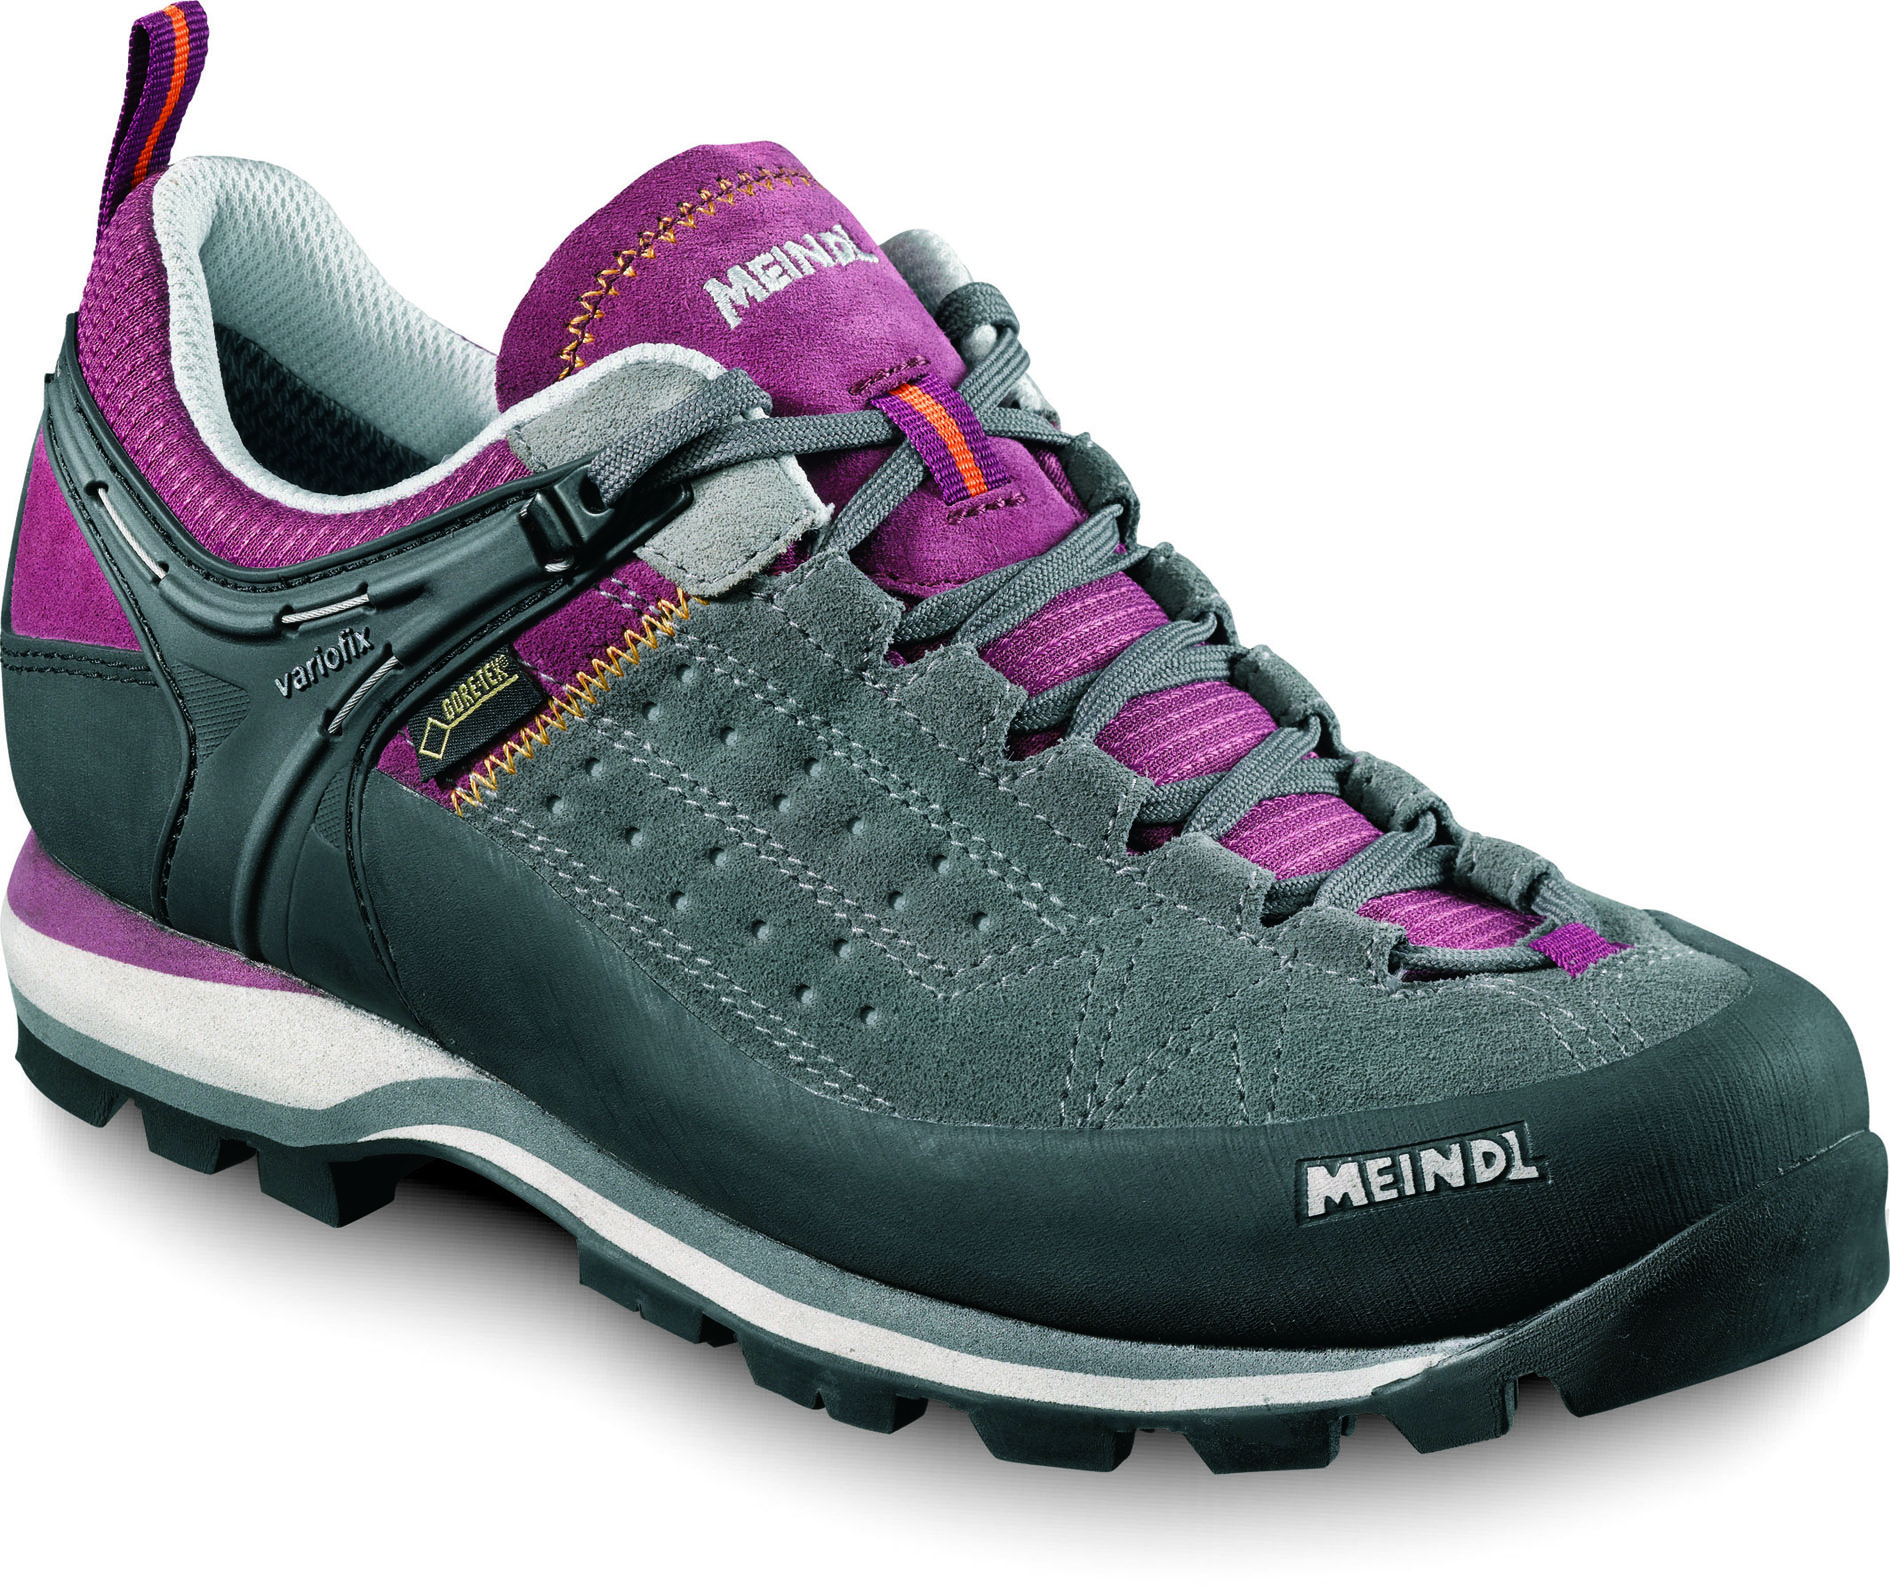 86d62ae17f9 Meindl Literock Lady GTX anthracite violet